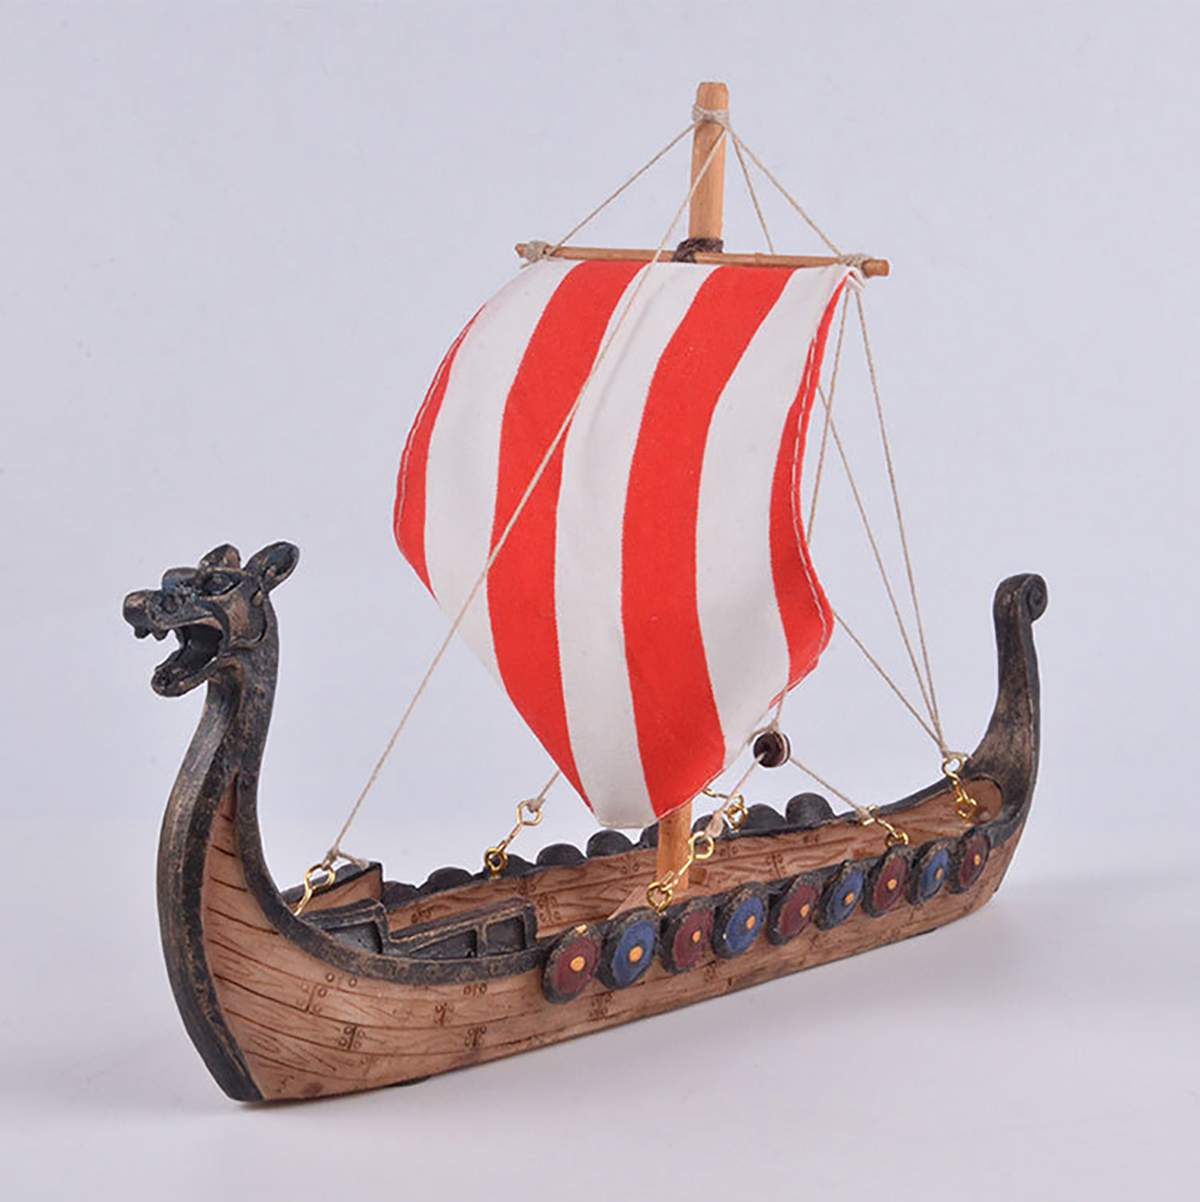 Viking Longship Dragon Boat Ornaments Carved Resin Craft Home Decorations Vikings Ships Sailing Model Toy Gifts Pirate Boat